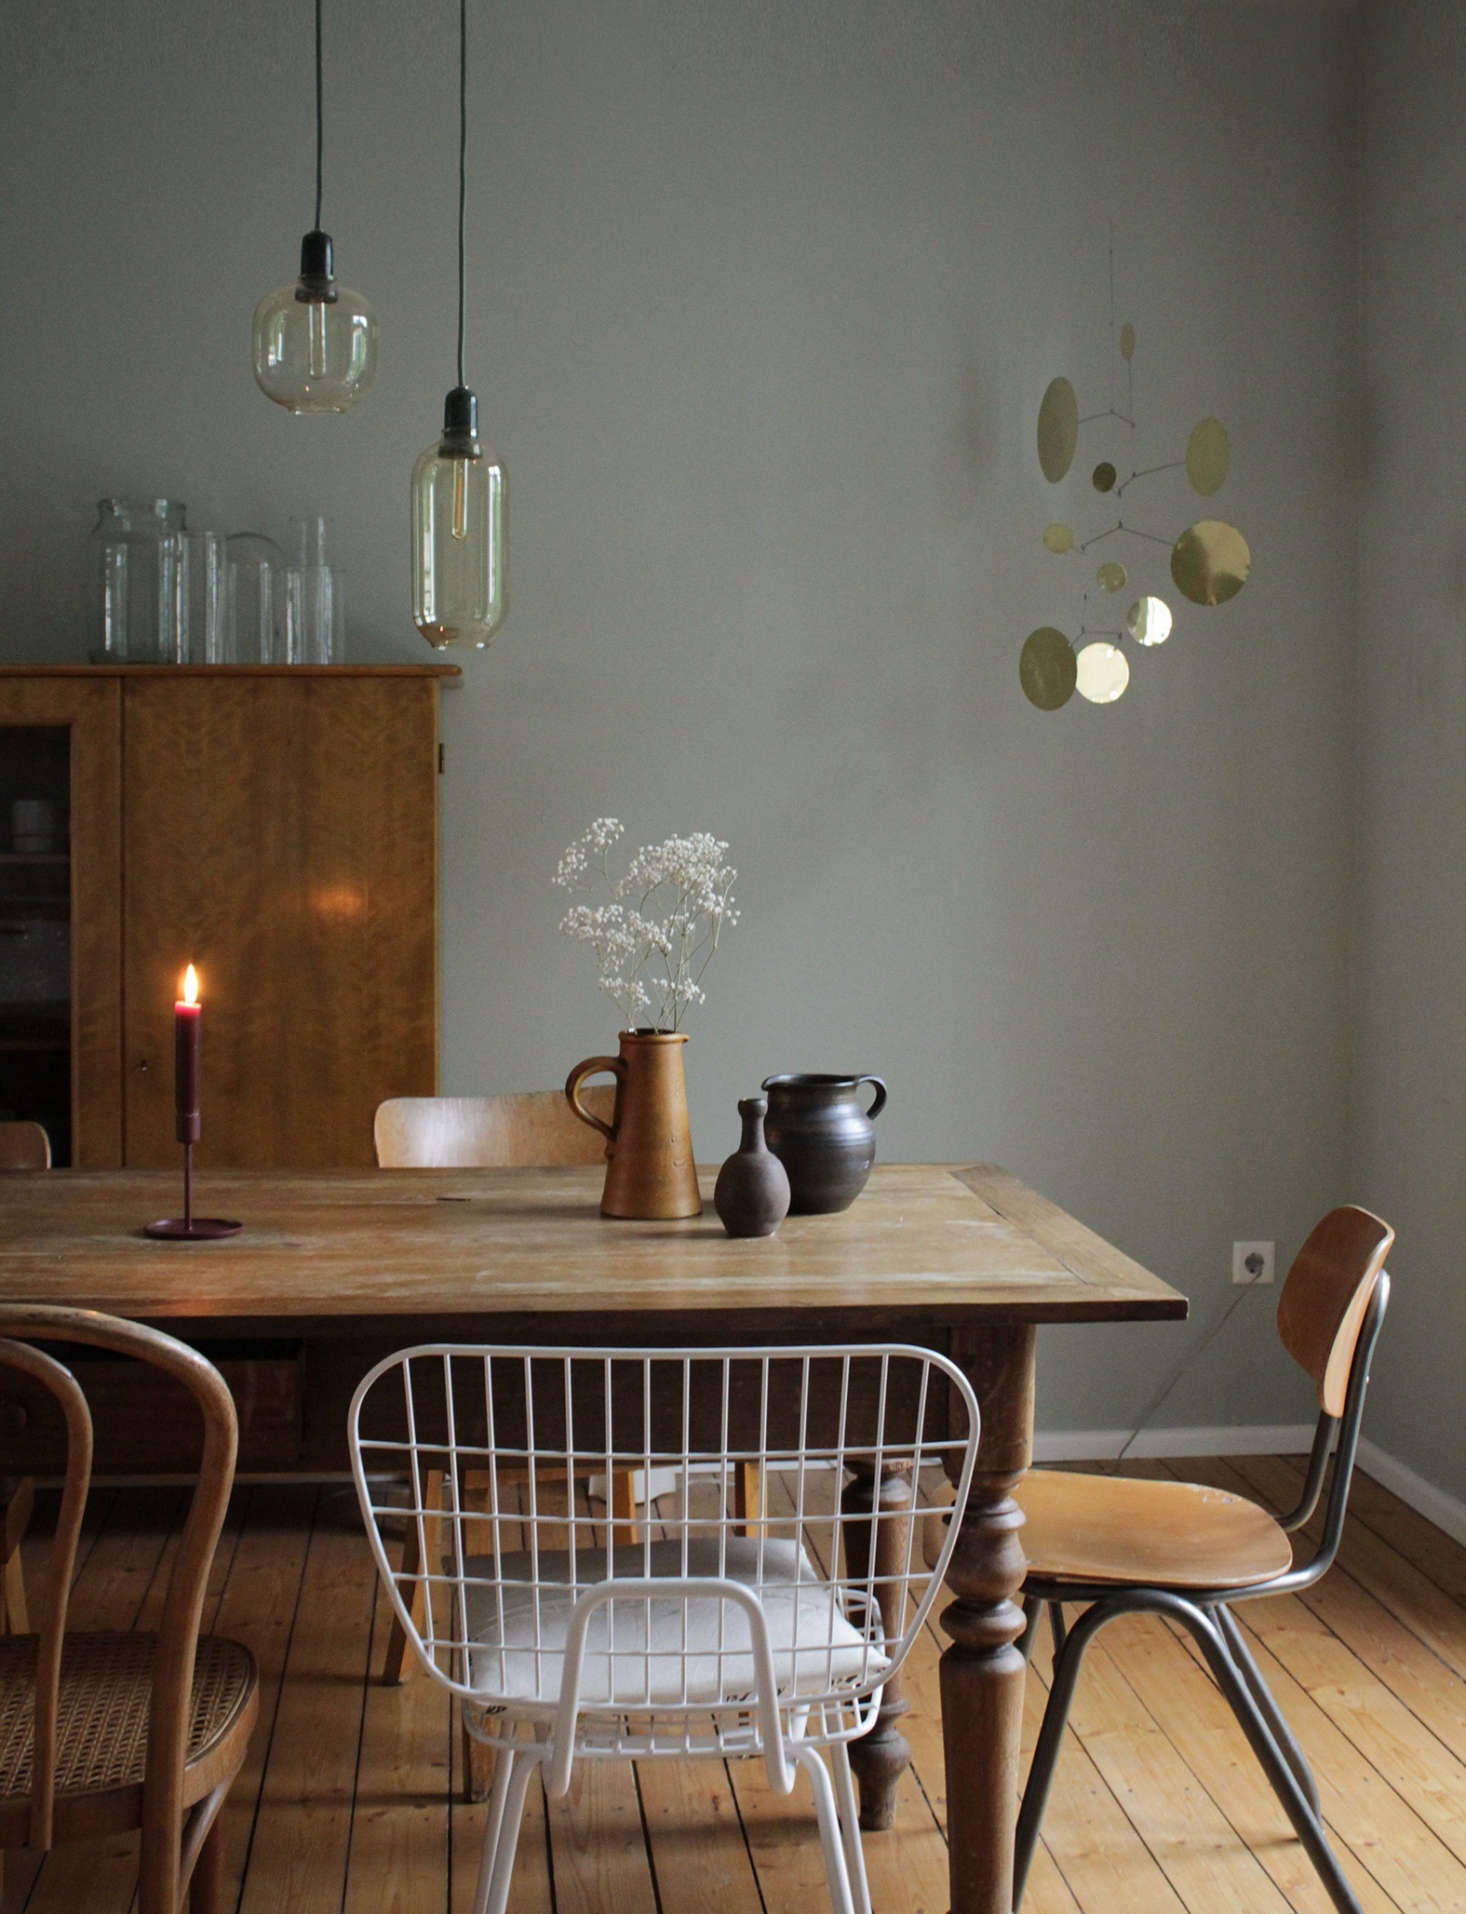 Mismatched chairs, from bentwood to Eames to a school relic, surround the table. The large armoire enables the couple to keep their kitchen pared down. Recognize the Brass Dots Mobile? It&#8